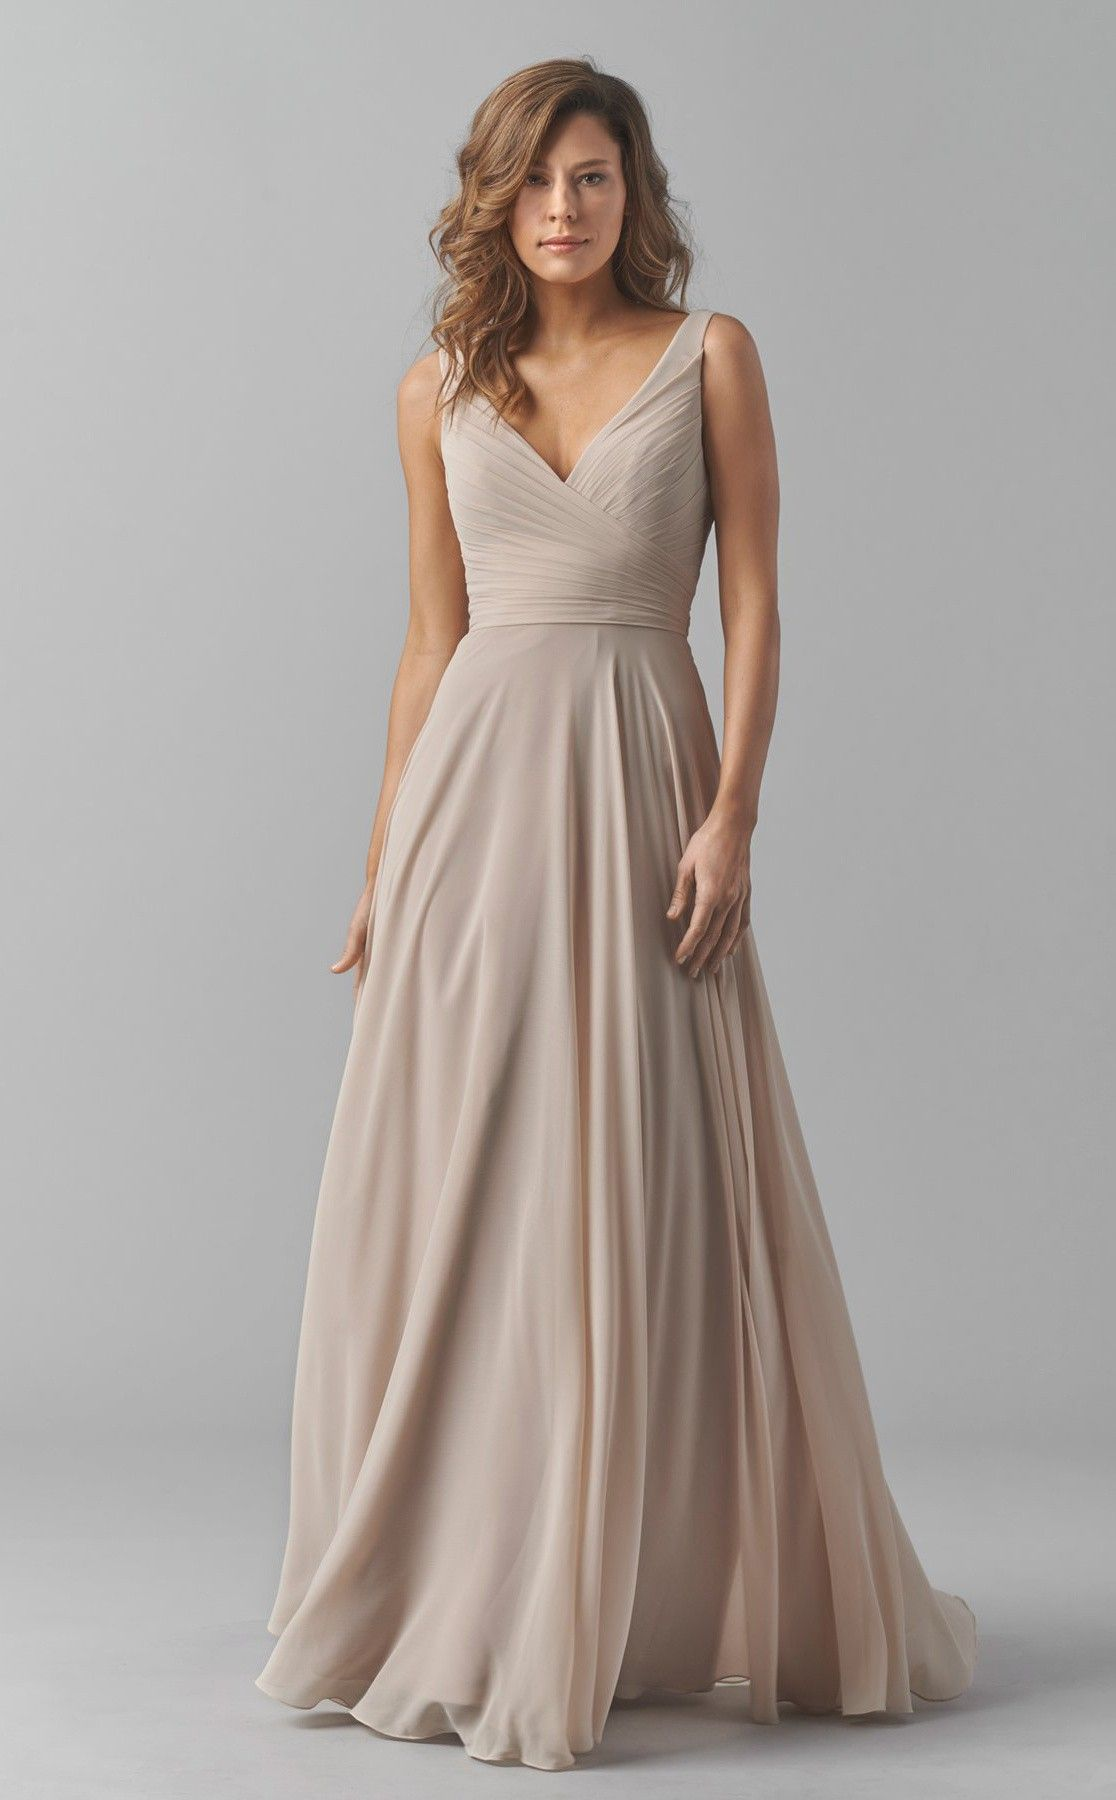 Chiffon long beige v neck bridesmaid dress bd ca1455 dress chiffon long beige v neck bridesmaid dress bd ca1455 ombrellifo Images